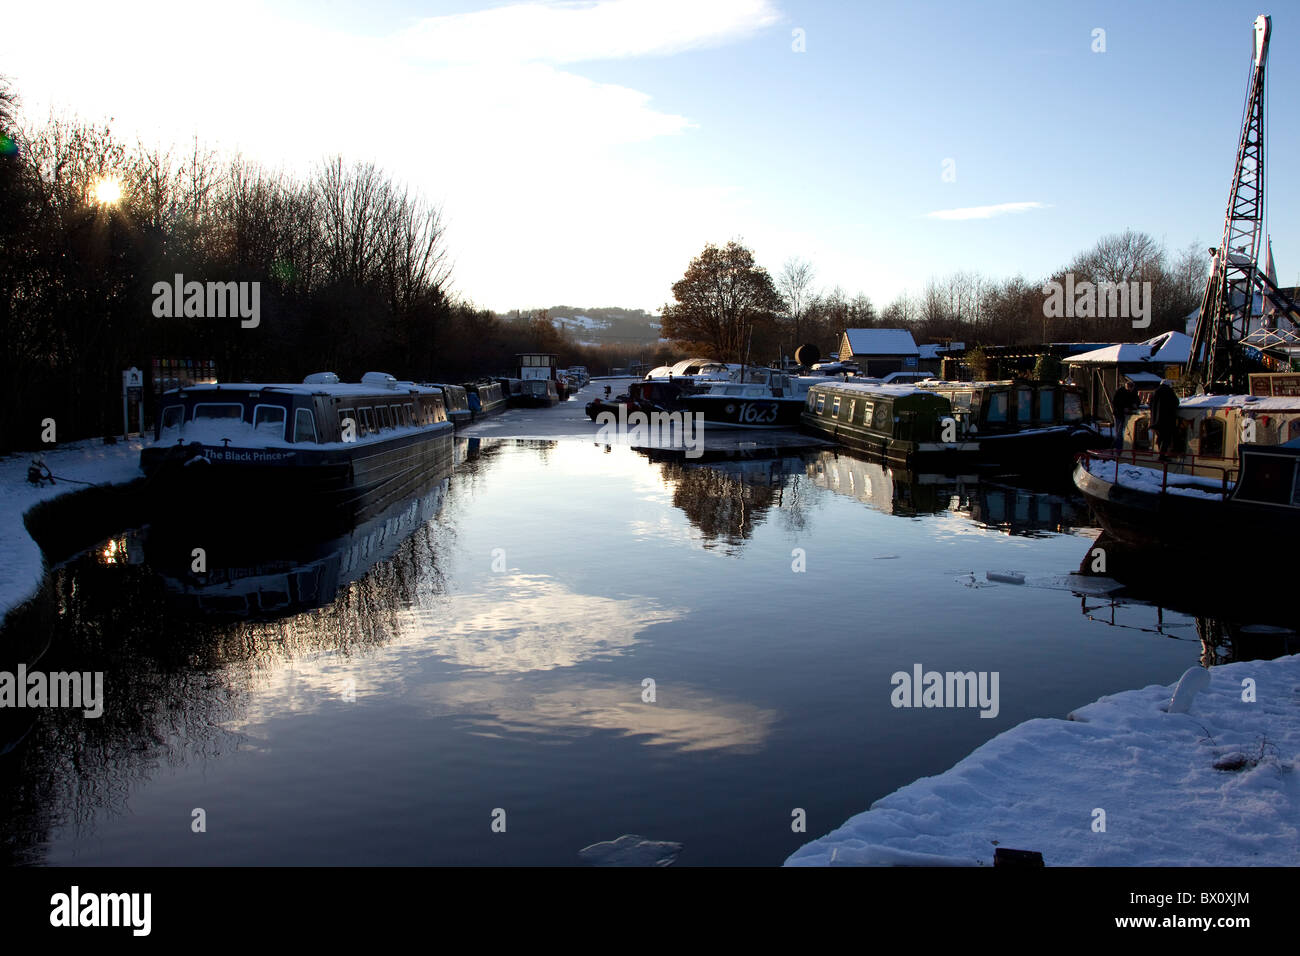 View of narrow boats moored at the Shepley Bridge Marina in Yorkshire in bitter wintery conditions - Stock Image